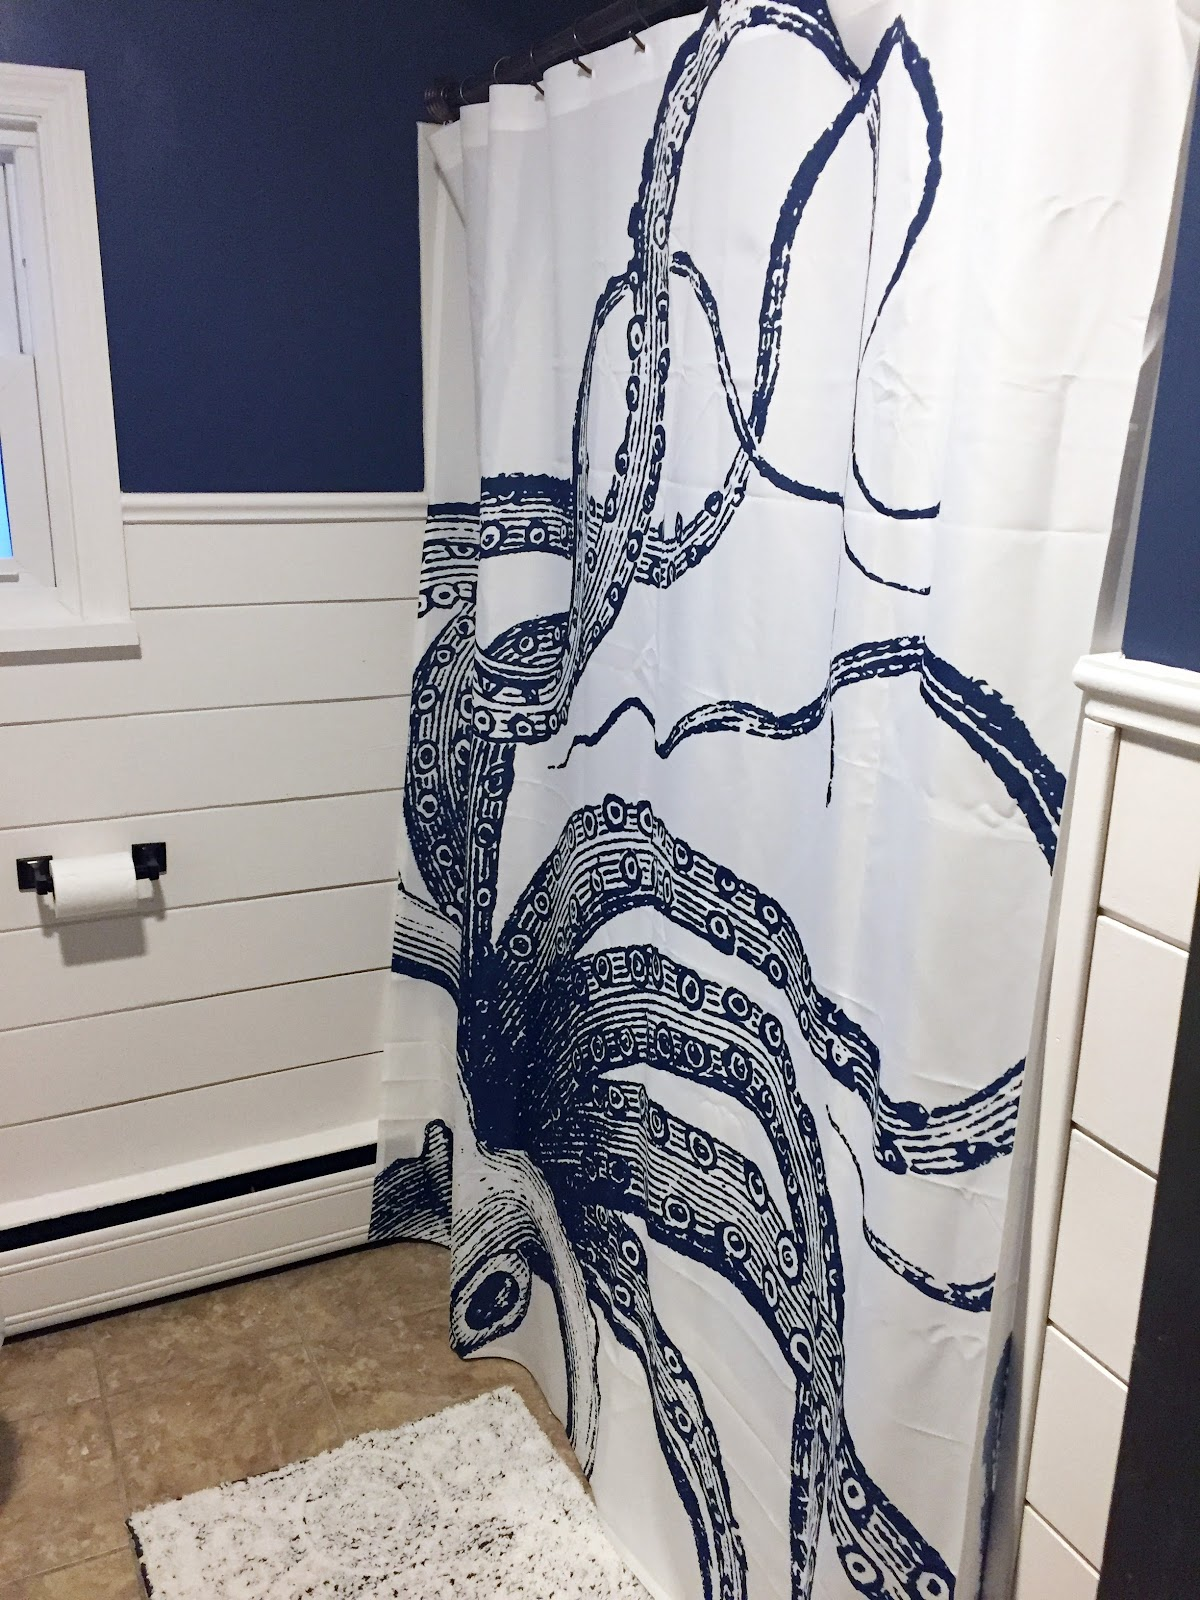 How cool is this squid shower curtain? I got this on Etsy. Link is in post.